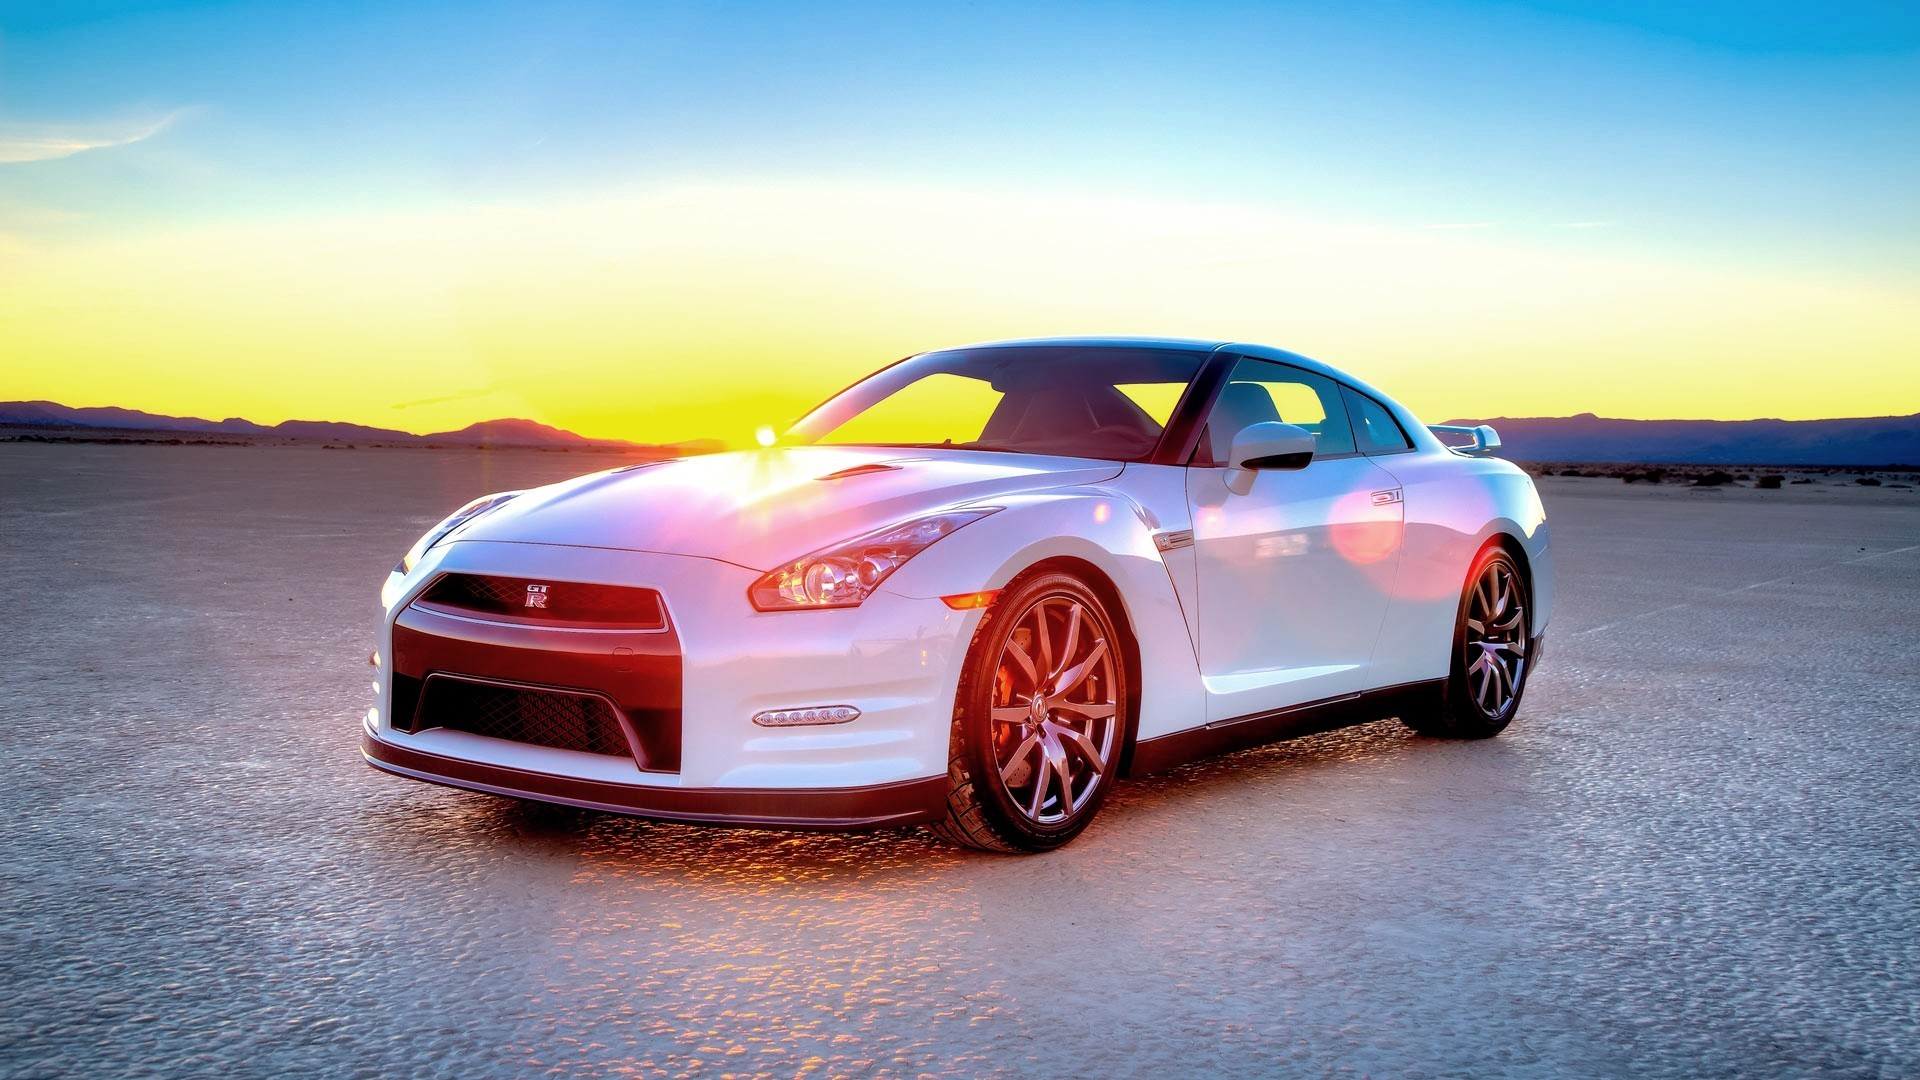 Nissan Roads 2014 R35 Gt R Skyline Gtr Wallpaper Allwallpaper In